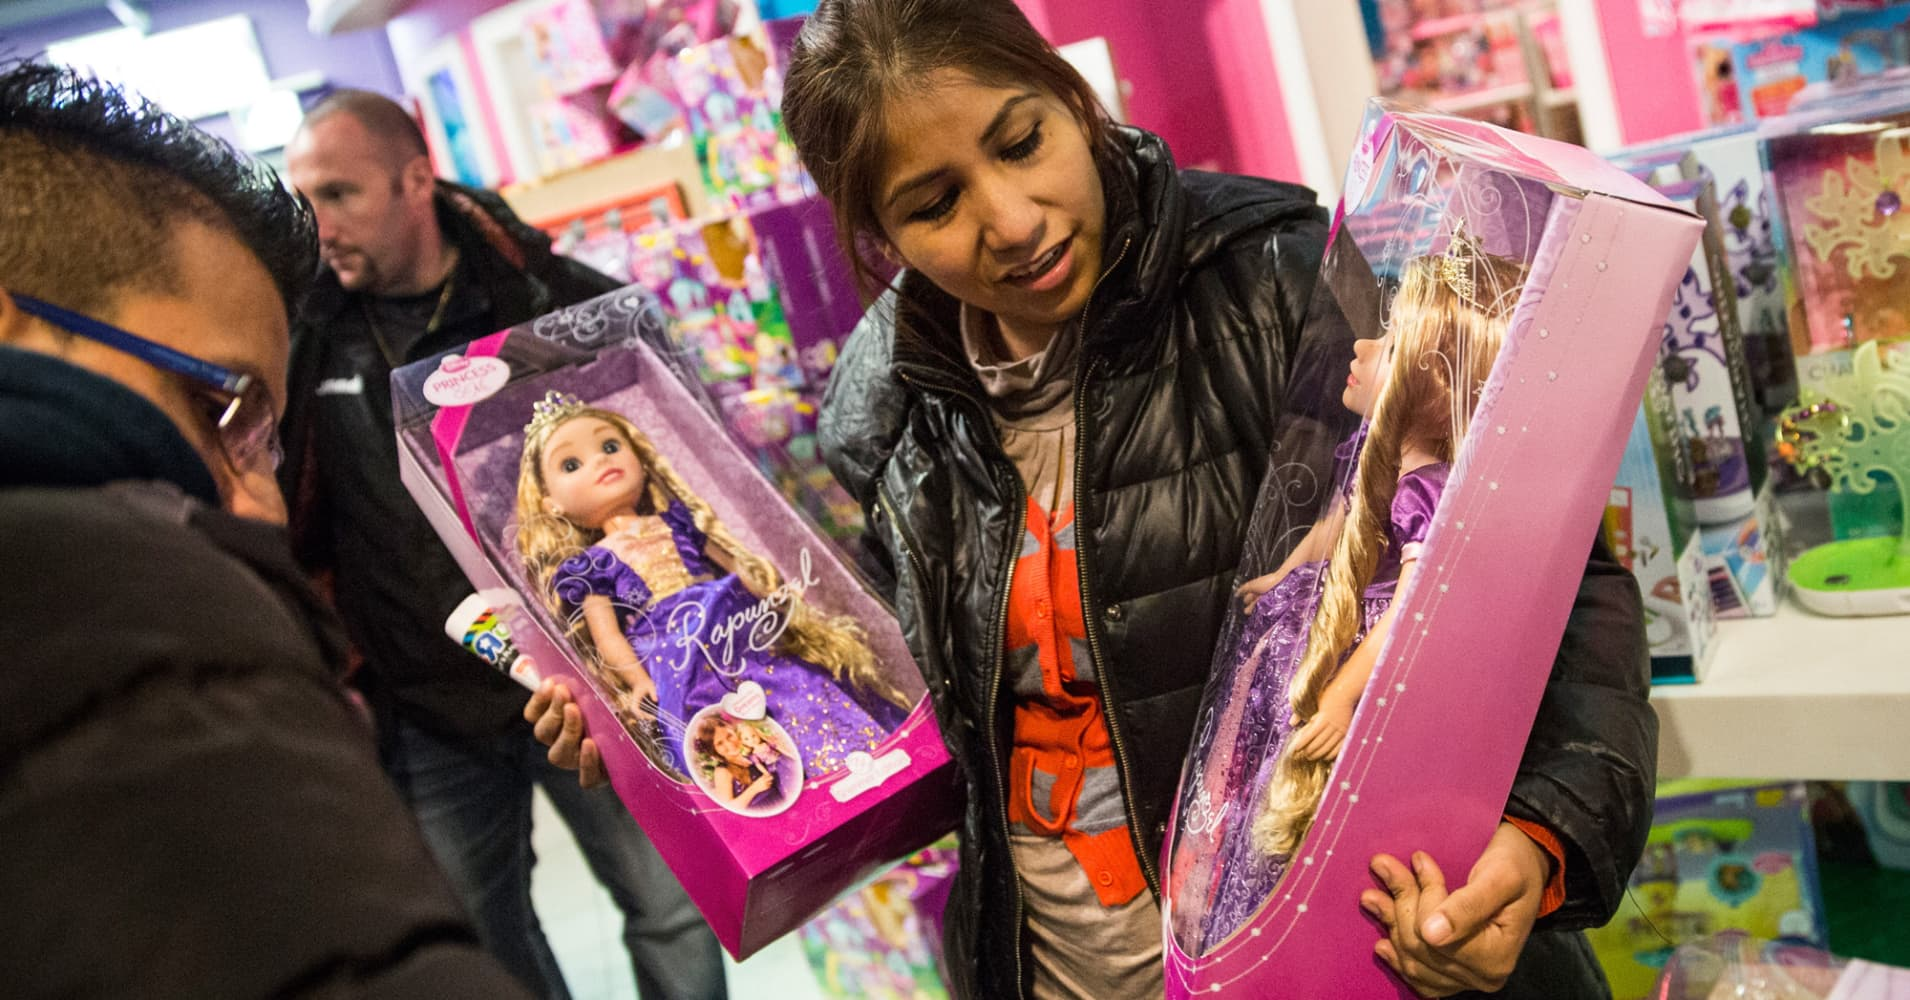 Retail analyst: Holiday season without Toys R Us is 'good news' for certain retailers